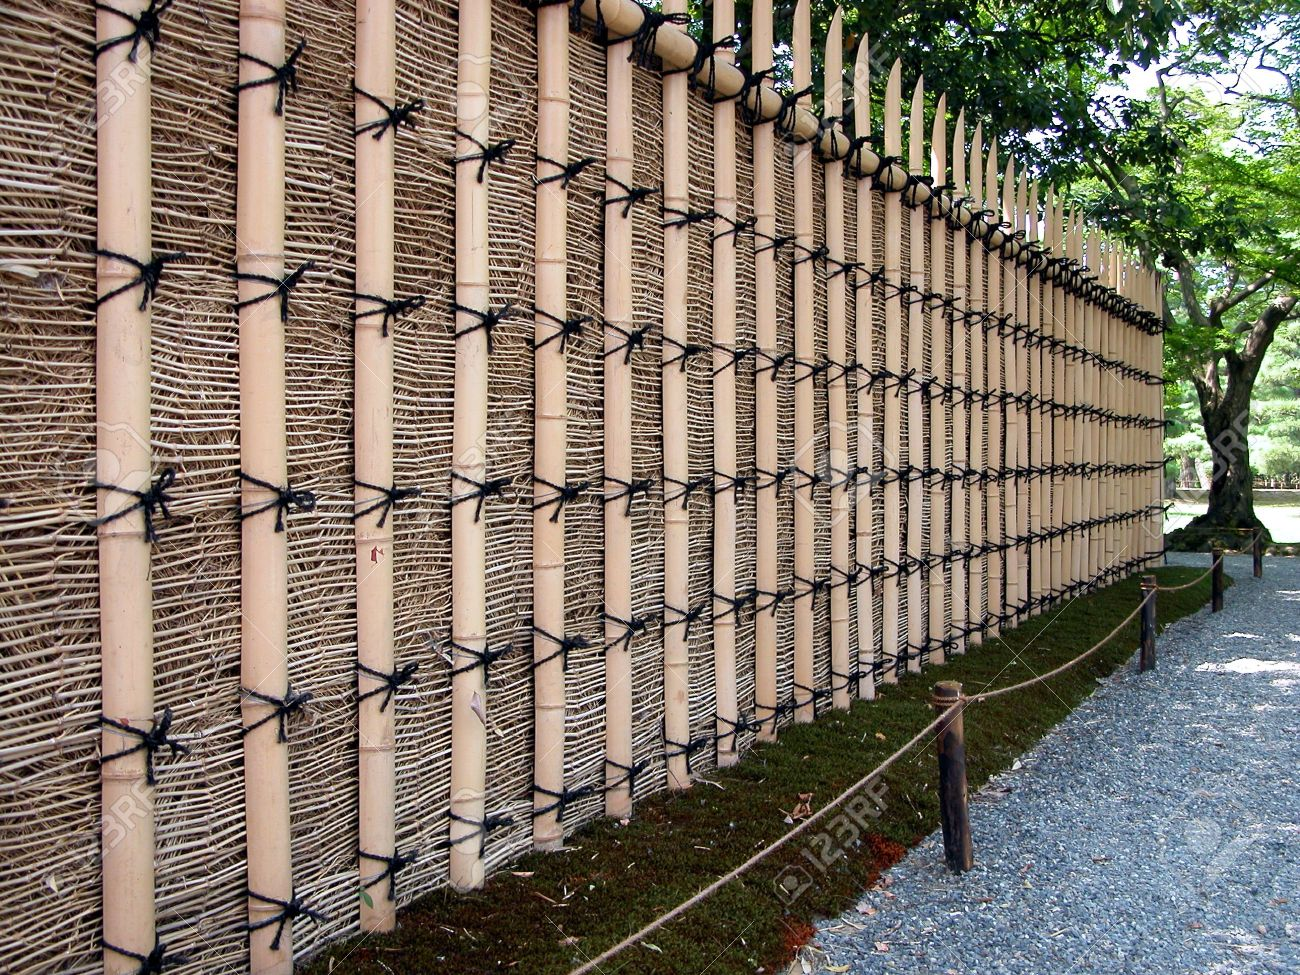 A bamboo fence which surrounds the katsura imperial villa from a bamboo fence which surrounds the katsura imperial villa from kyotojapan stock photo baanklon Image collections